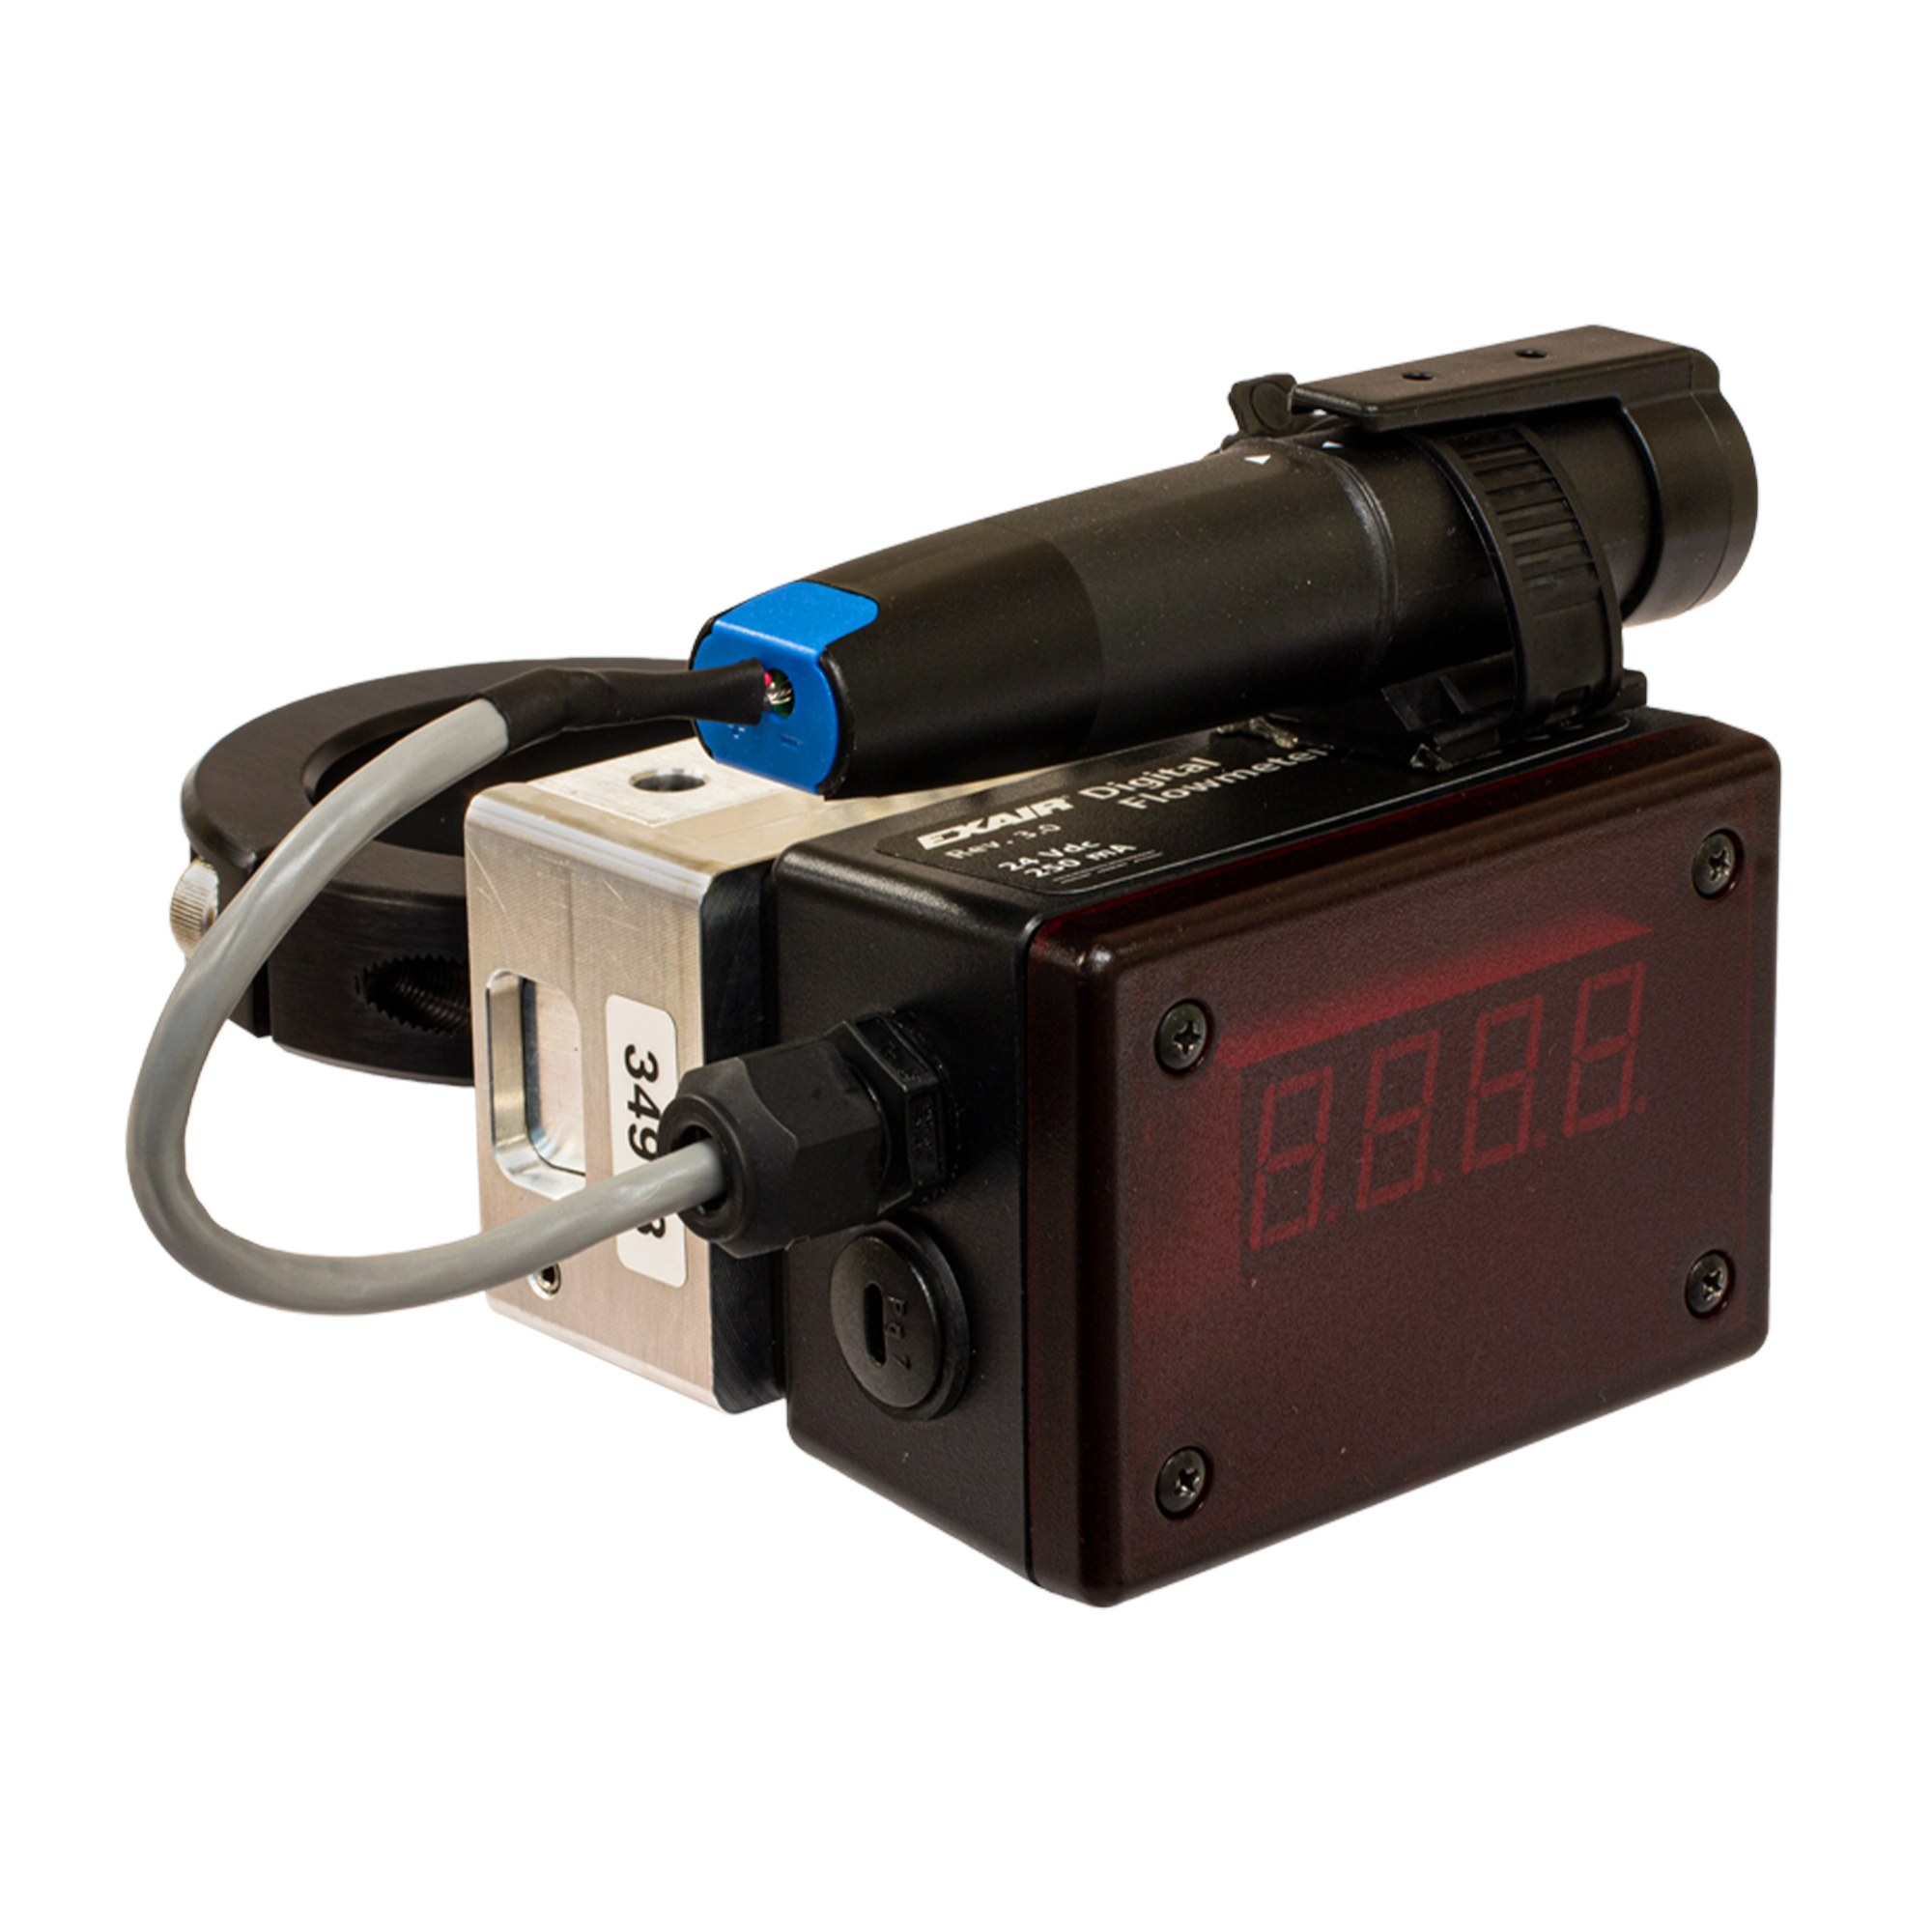 Hot Tap Digital Flowmeters are available with a Data Logger.